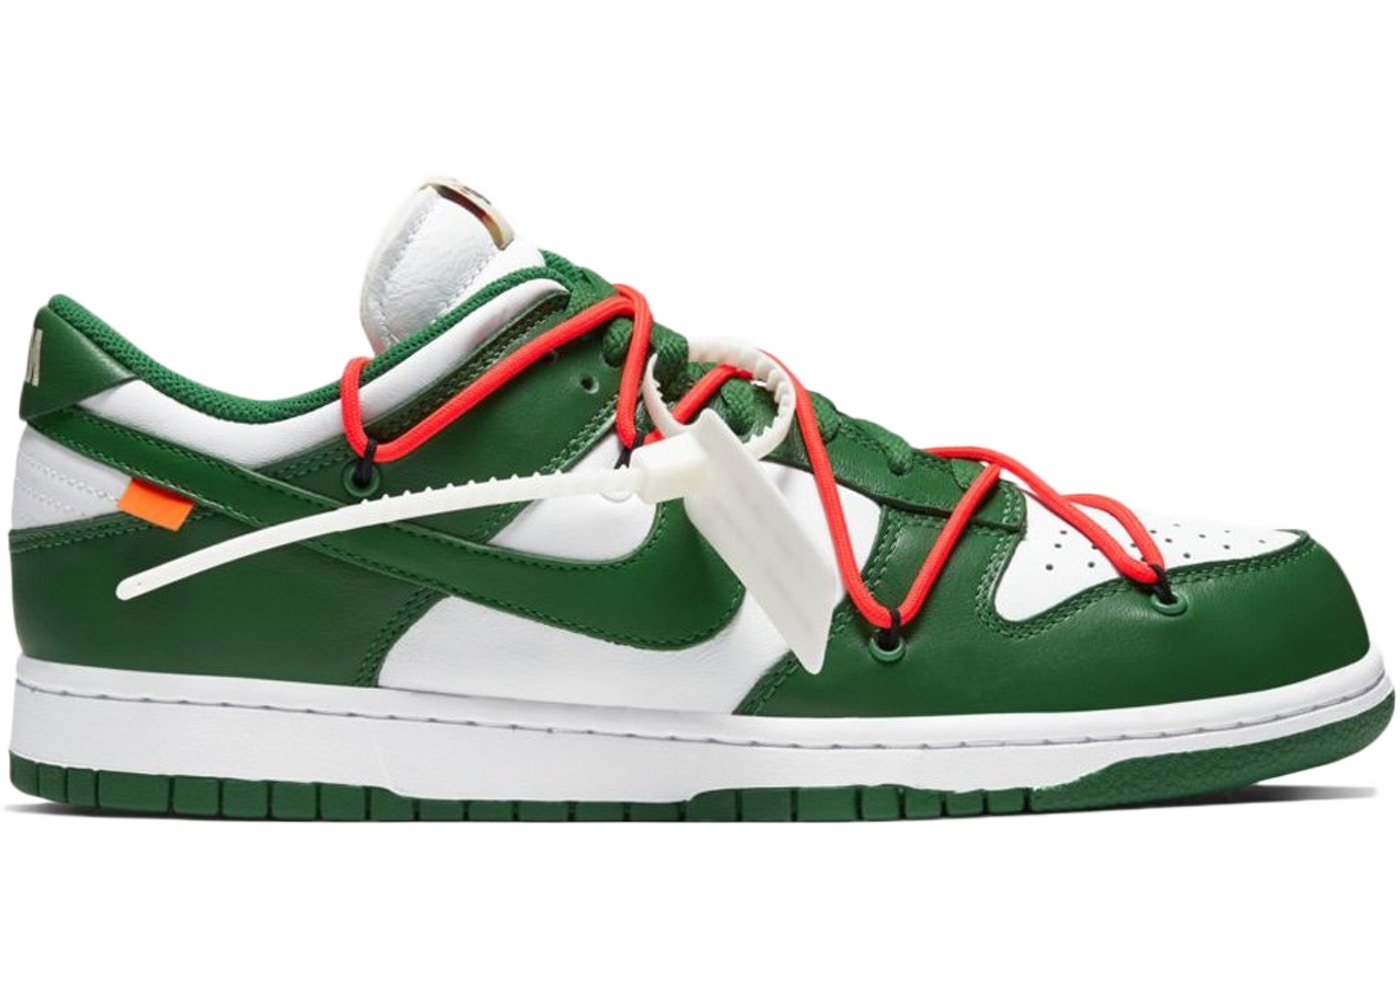 molécula logo Soberano  Nike Dunk Low Off-White Pine Green - CT0856-100